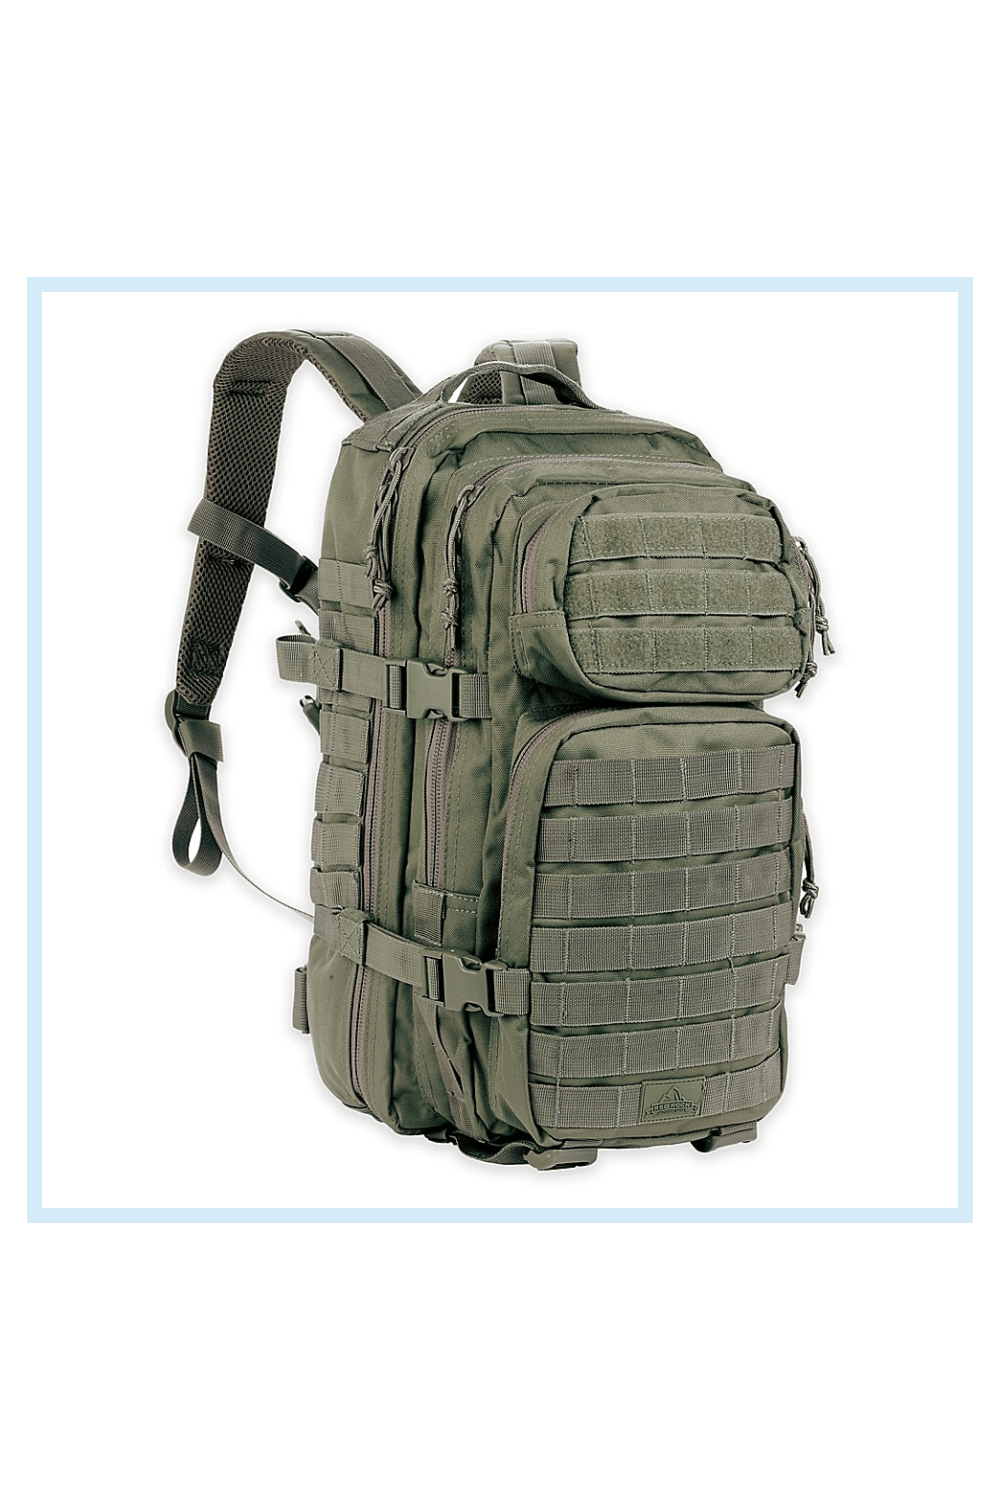 Photo of Red Rock Outdoor Gear Assault Pack In Olive Drab